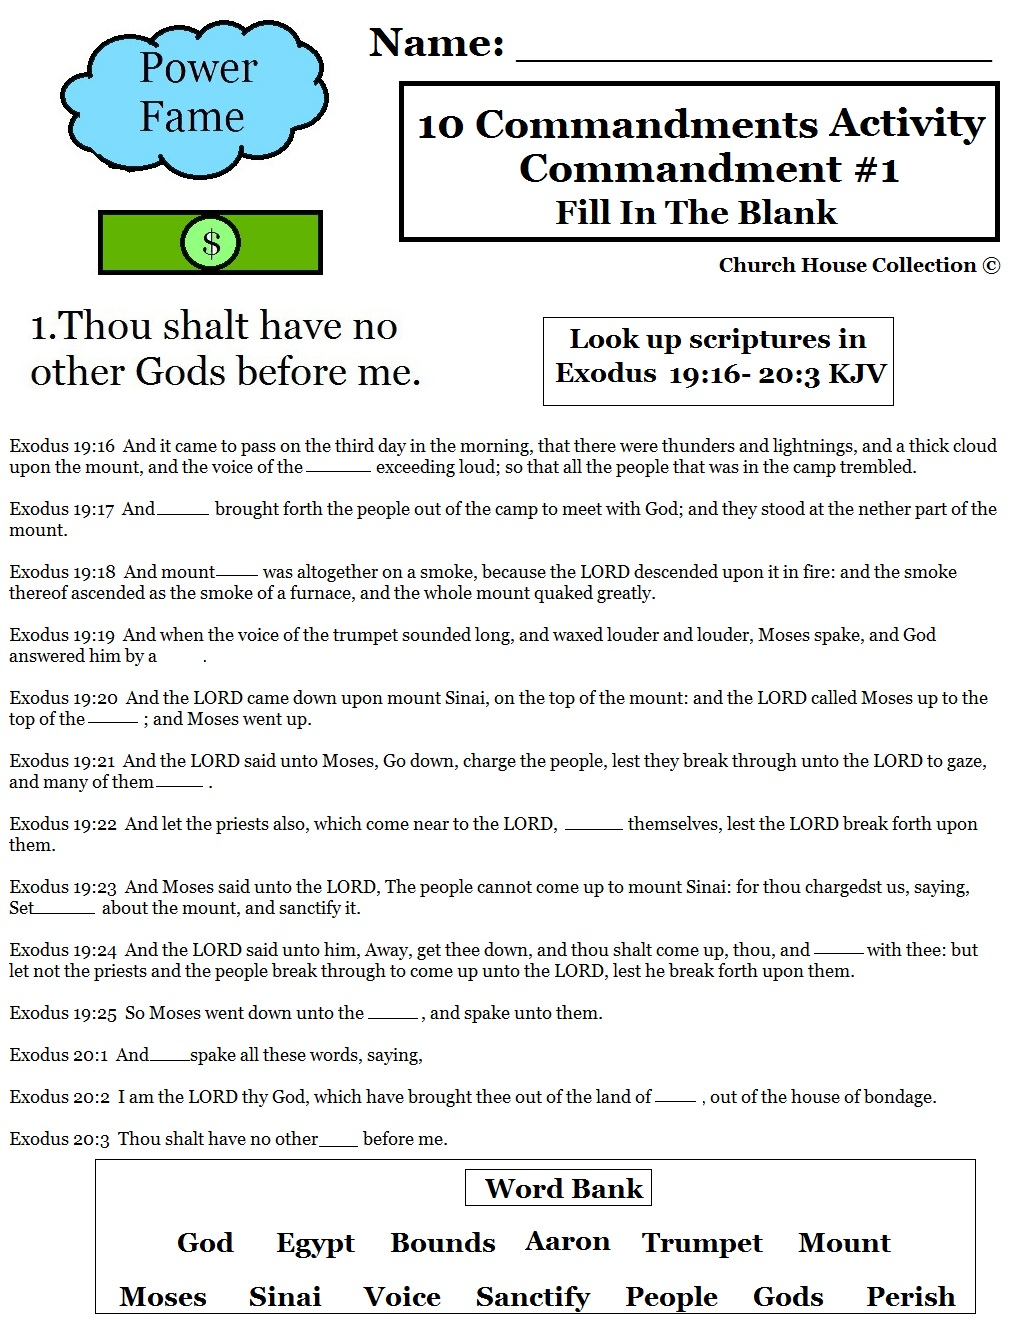 Printables 10 Commandments Worksheet church house collection blog 10 commandments thou shalt have no free printable activity sheet fill in the blank page for kids